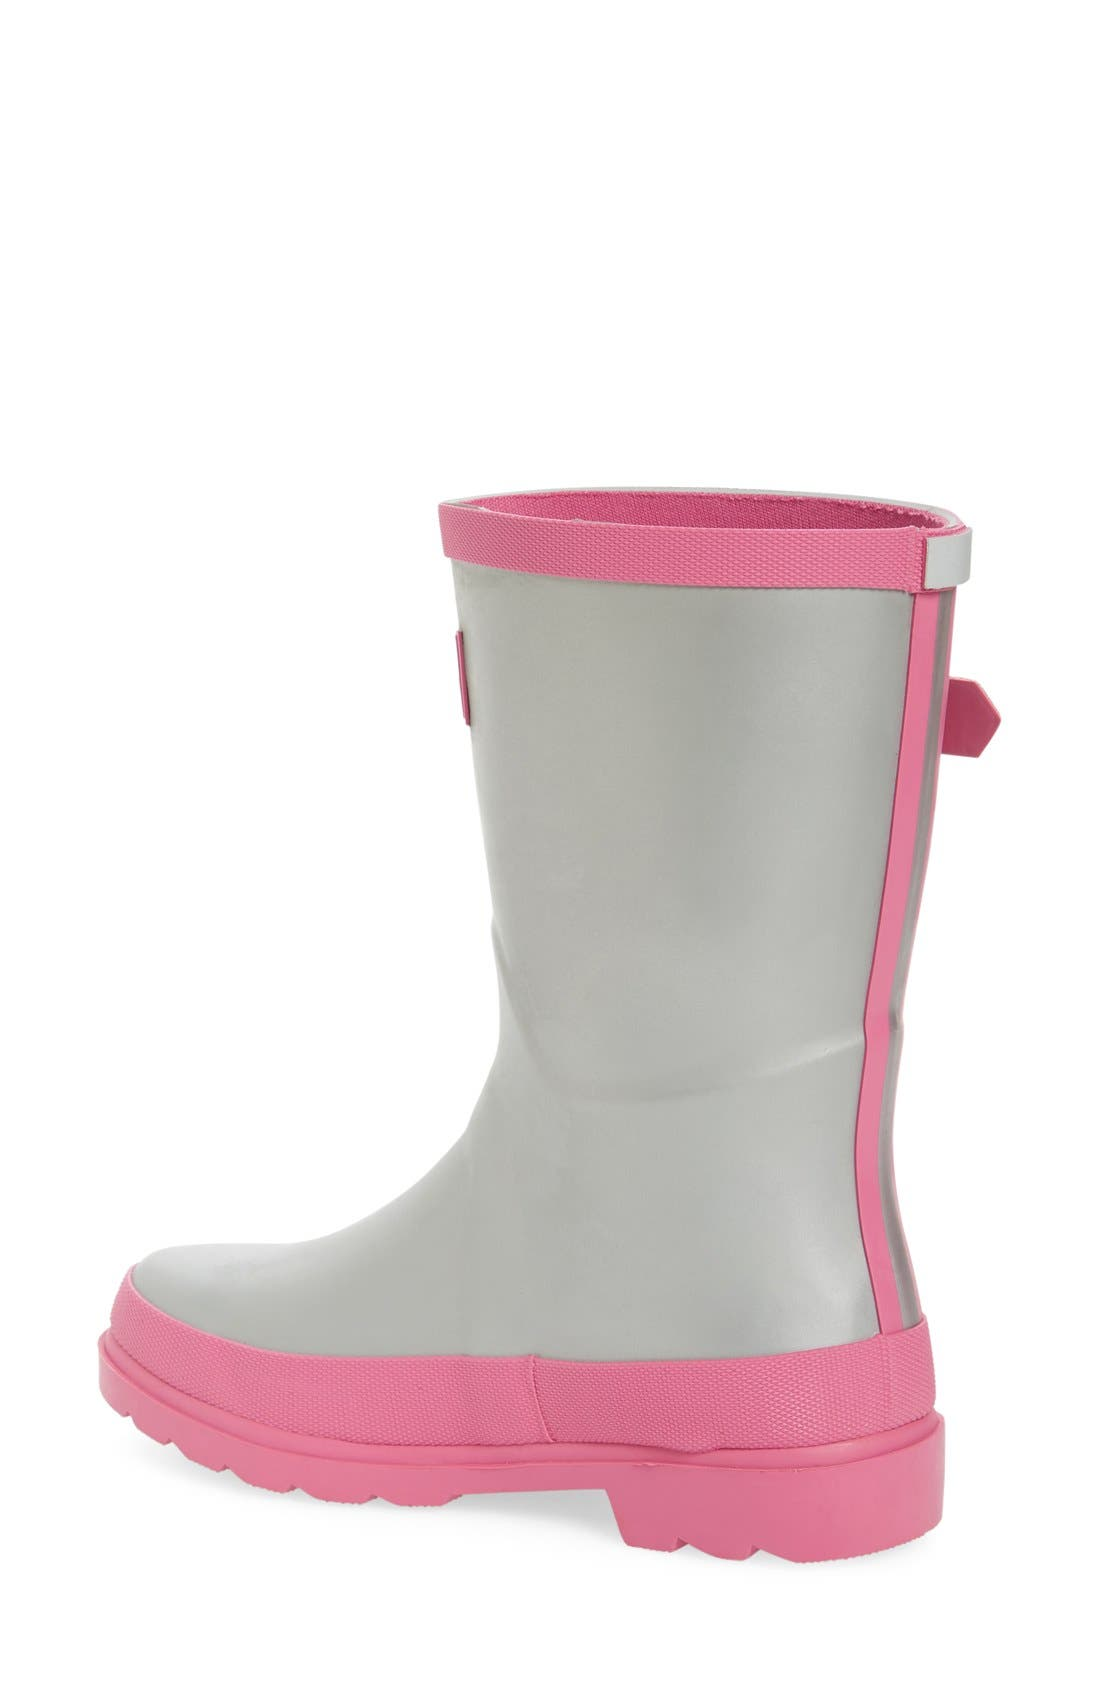 Field Welly Rain Boot,                             Alternate thumbnail 6, color,                             040